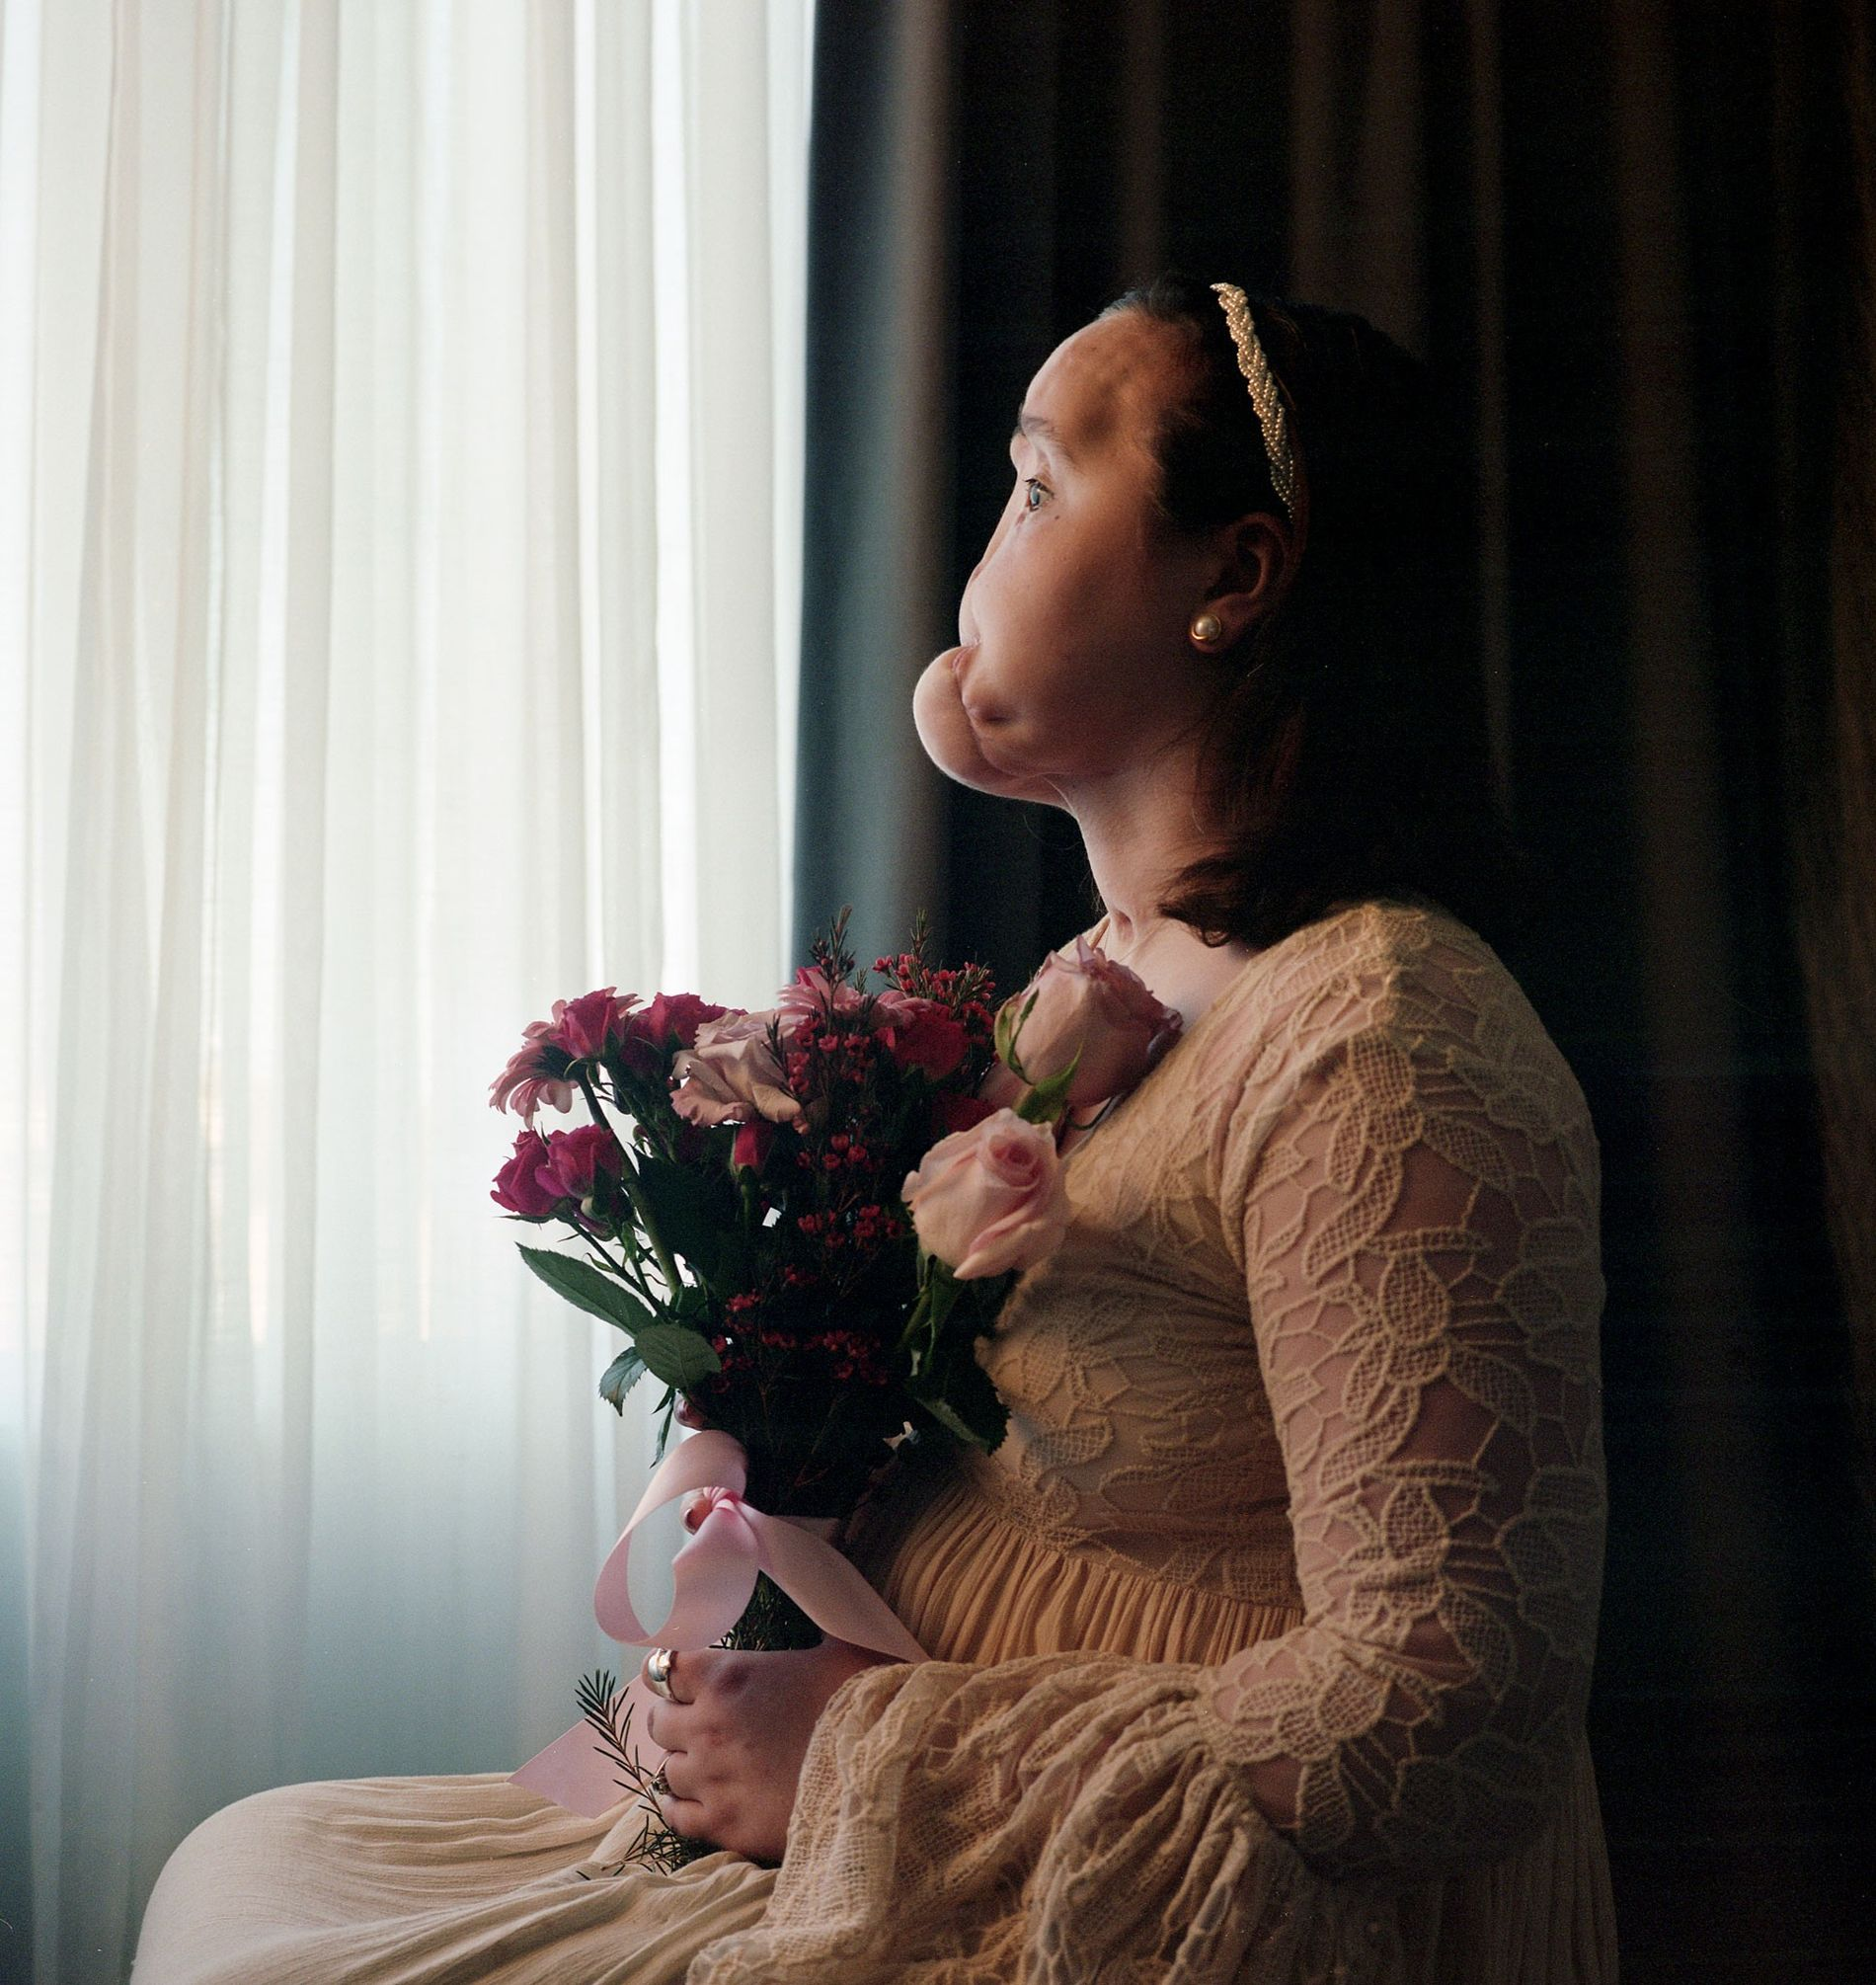 """Before Katie Stubblefield had a face transplant, she posed for this portrait. It shows her severely injured face—but photographer Maggie Steber also wanted to capture """"her inner beauty and her pride and determination."""""""